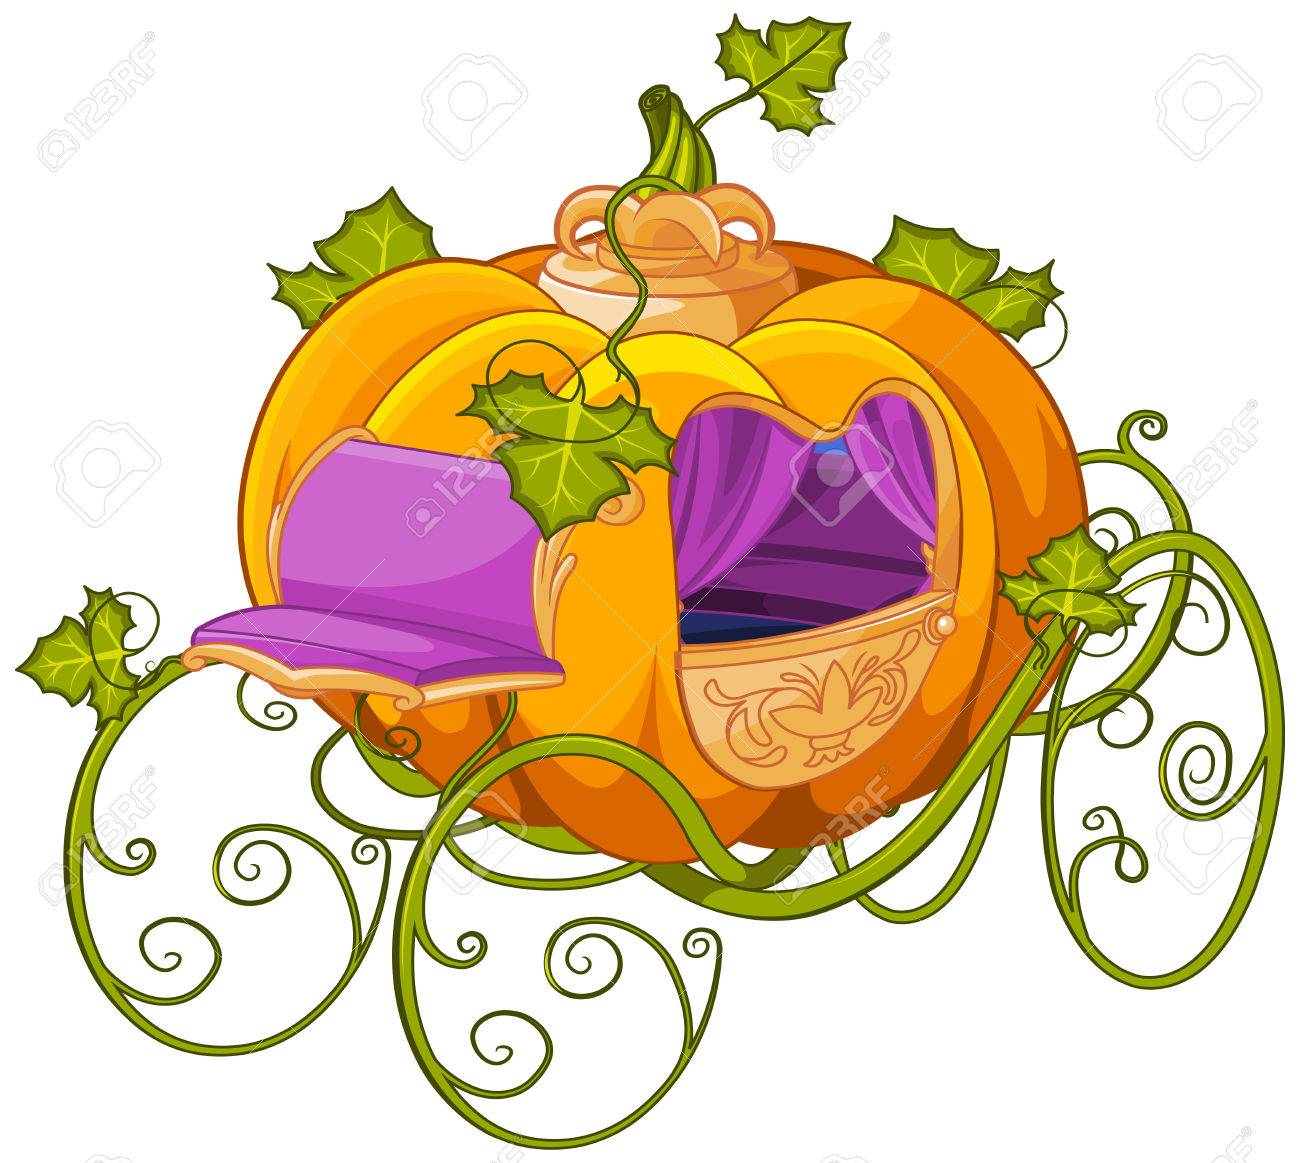 hight resolution of 1300x1163 collection of cinderella pumpkin carriage clipart high